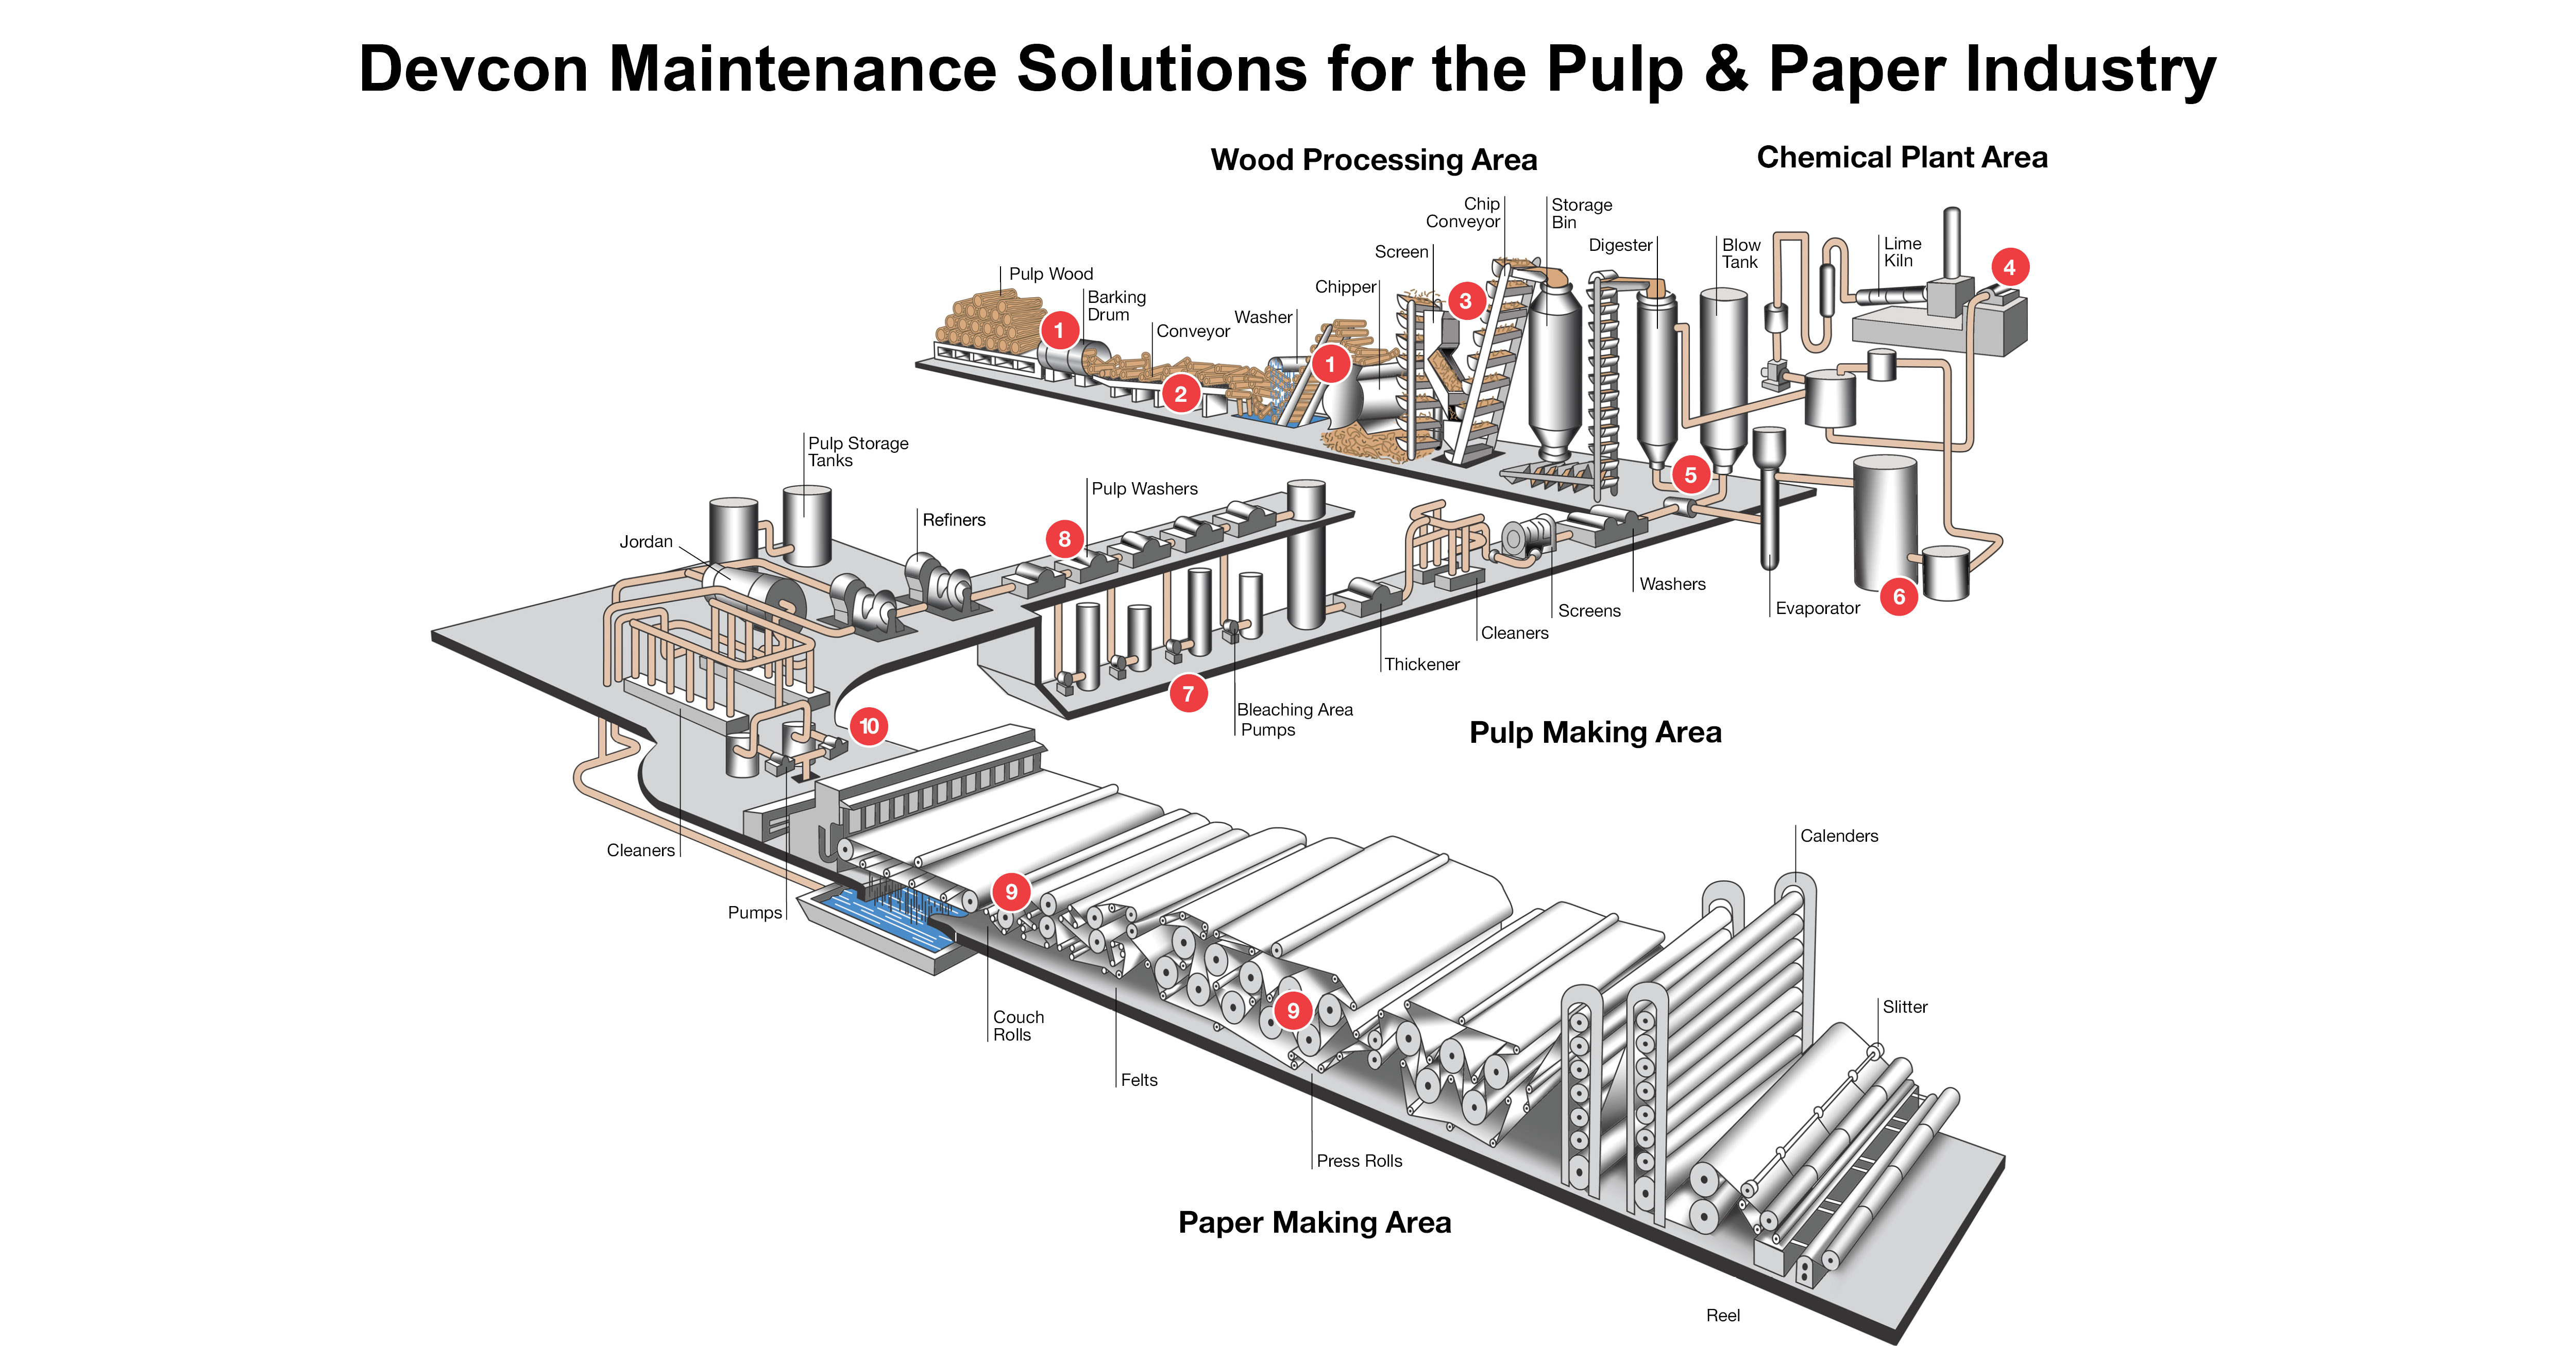 Pulp & Paper process image Linkedin final V3.jpg